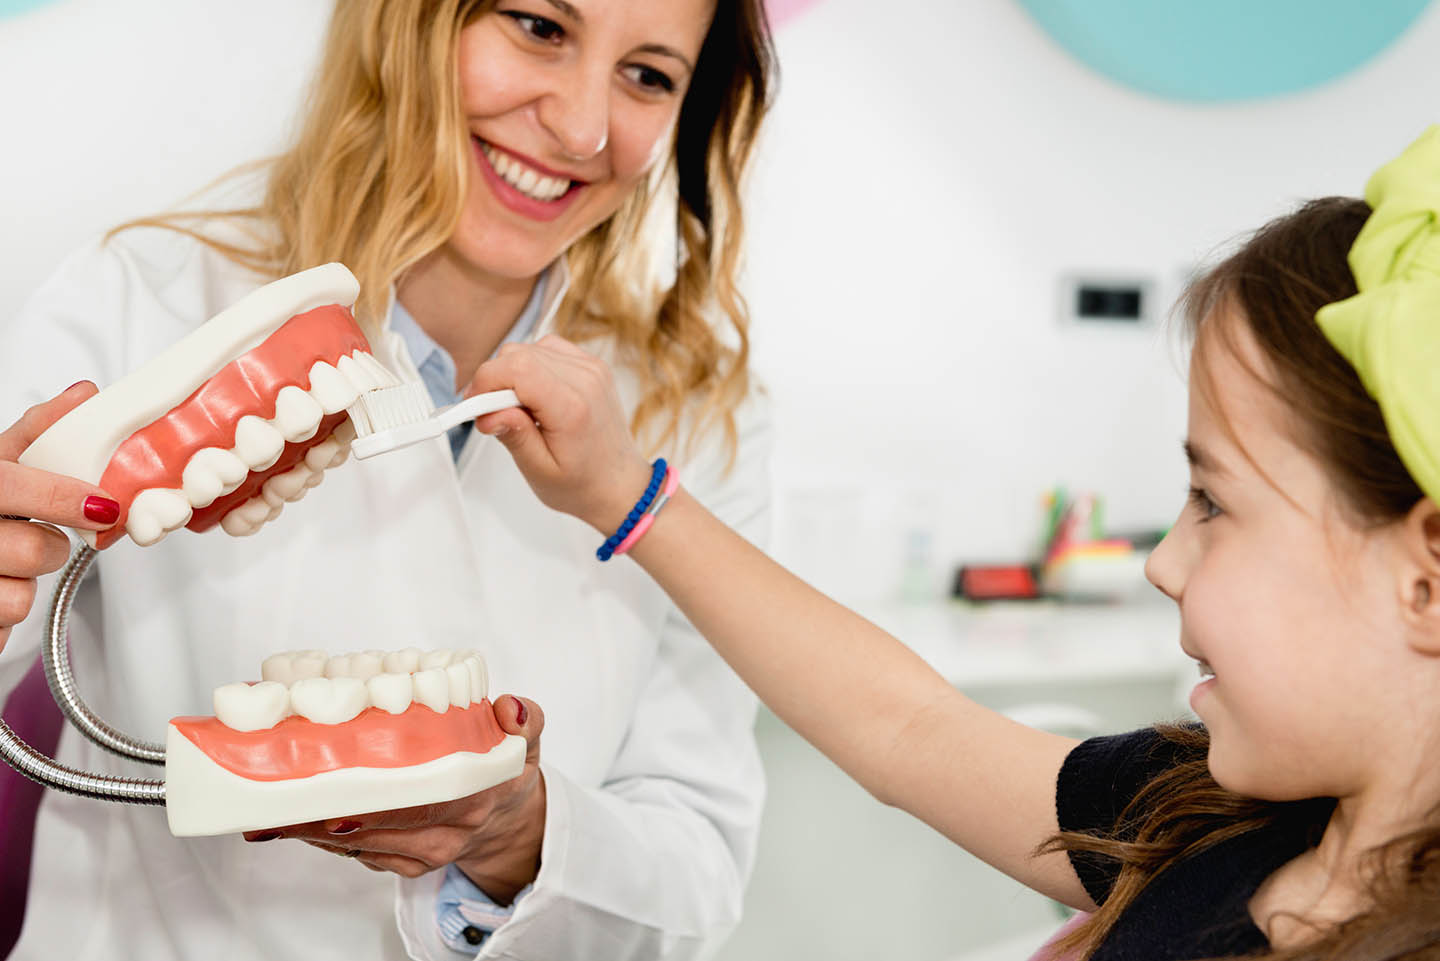 child brushing tooth model with dentist